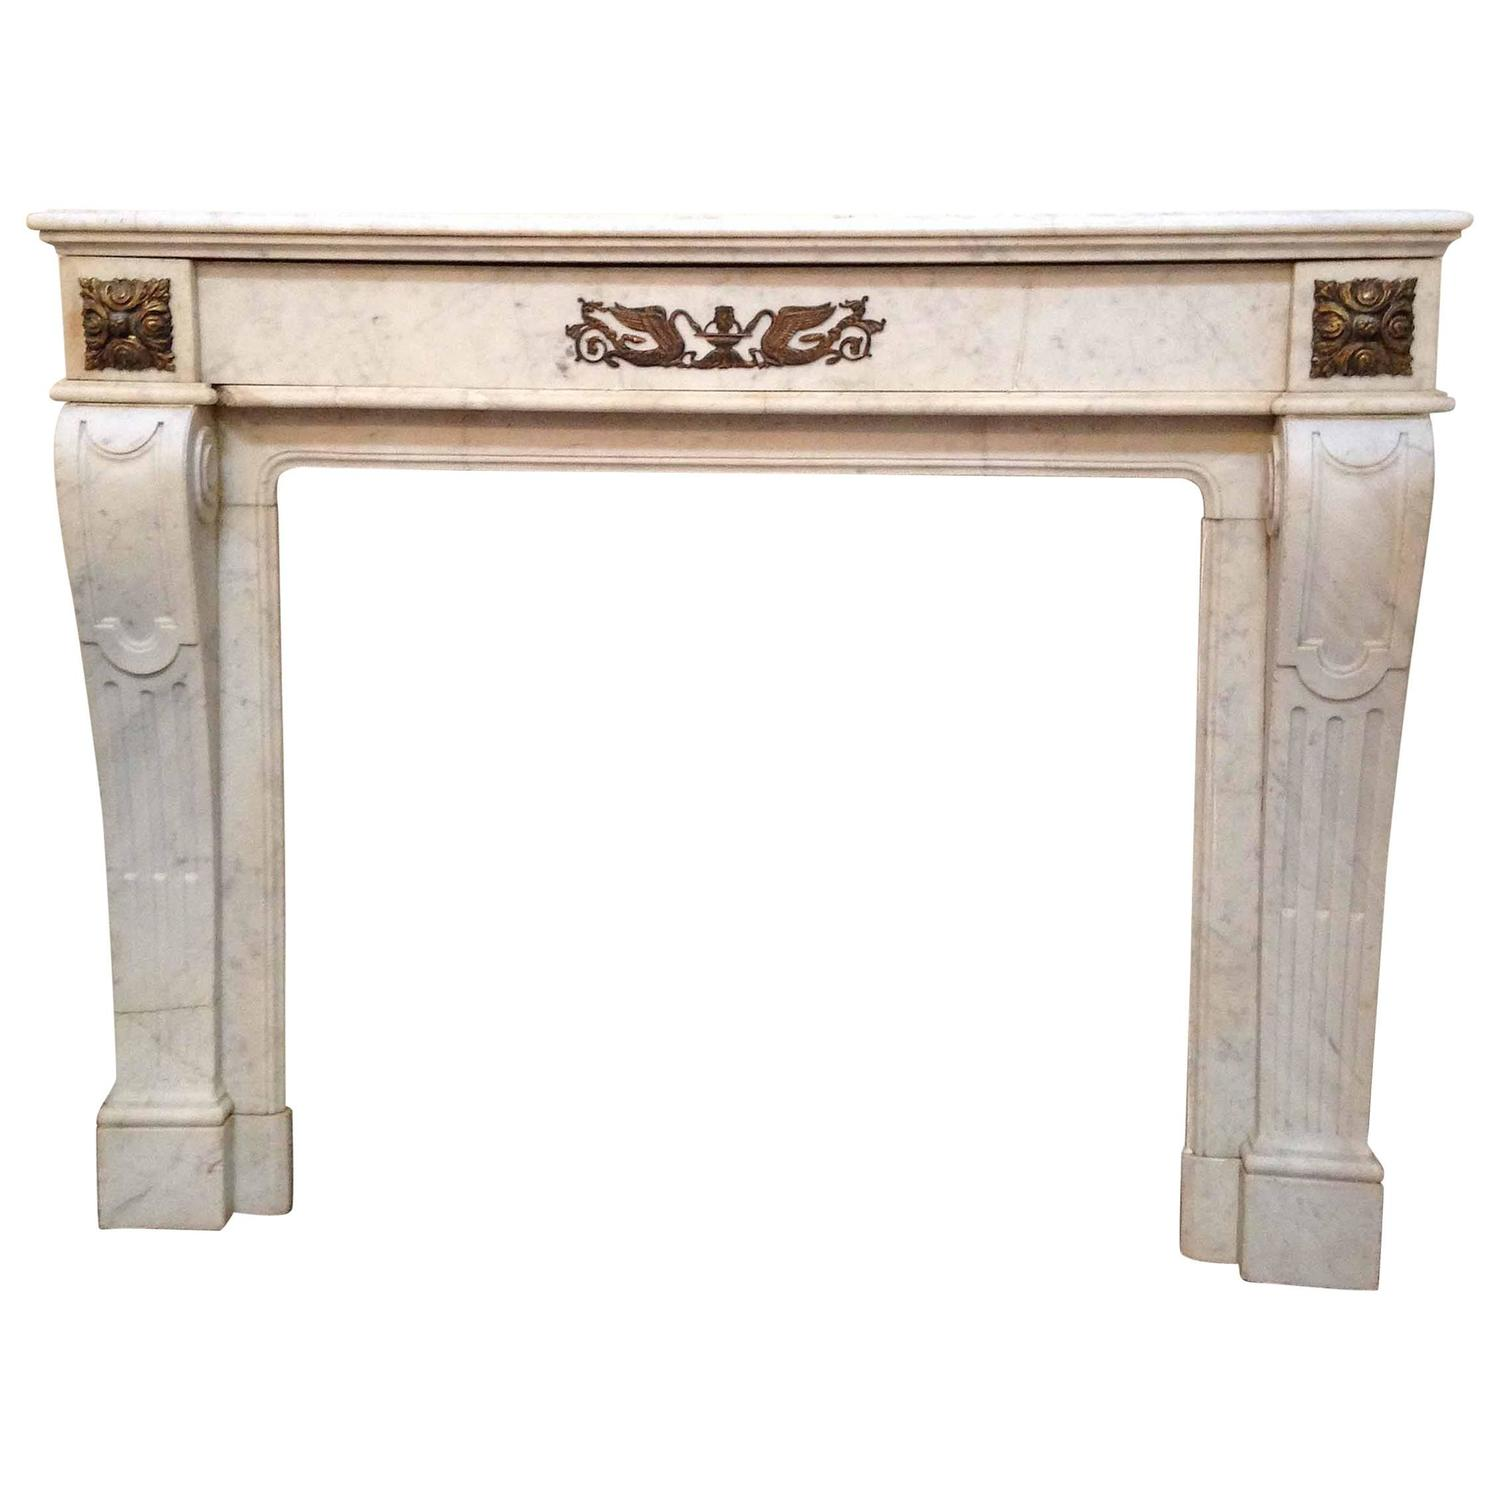 Carrara marble mantel for sale at 1stdibs for Marble mantels for sale